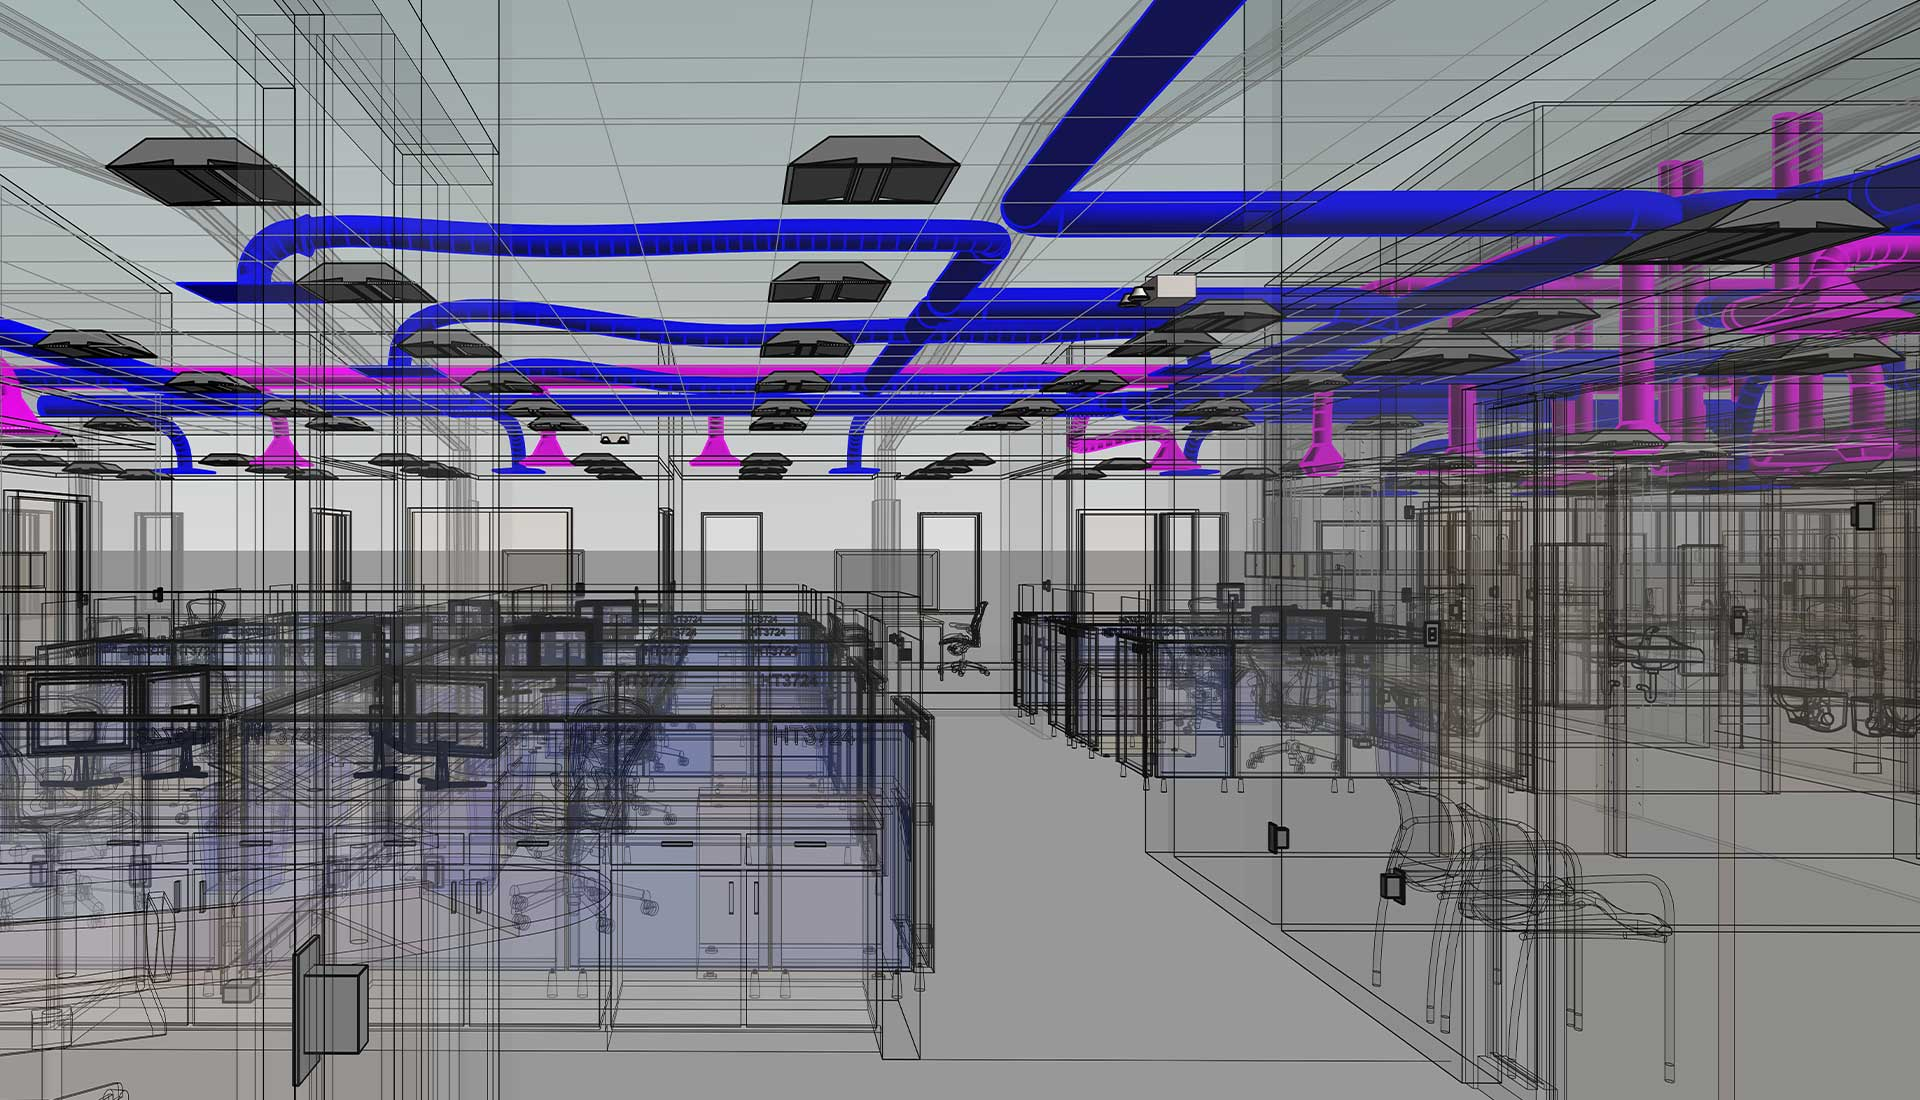 HVAC-Ducting-System-on-Roof-with-Wireframe-Architectural-View-inside-of-a-Industrial-Project_BIM-Modeling-by-United-BIM